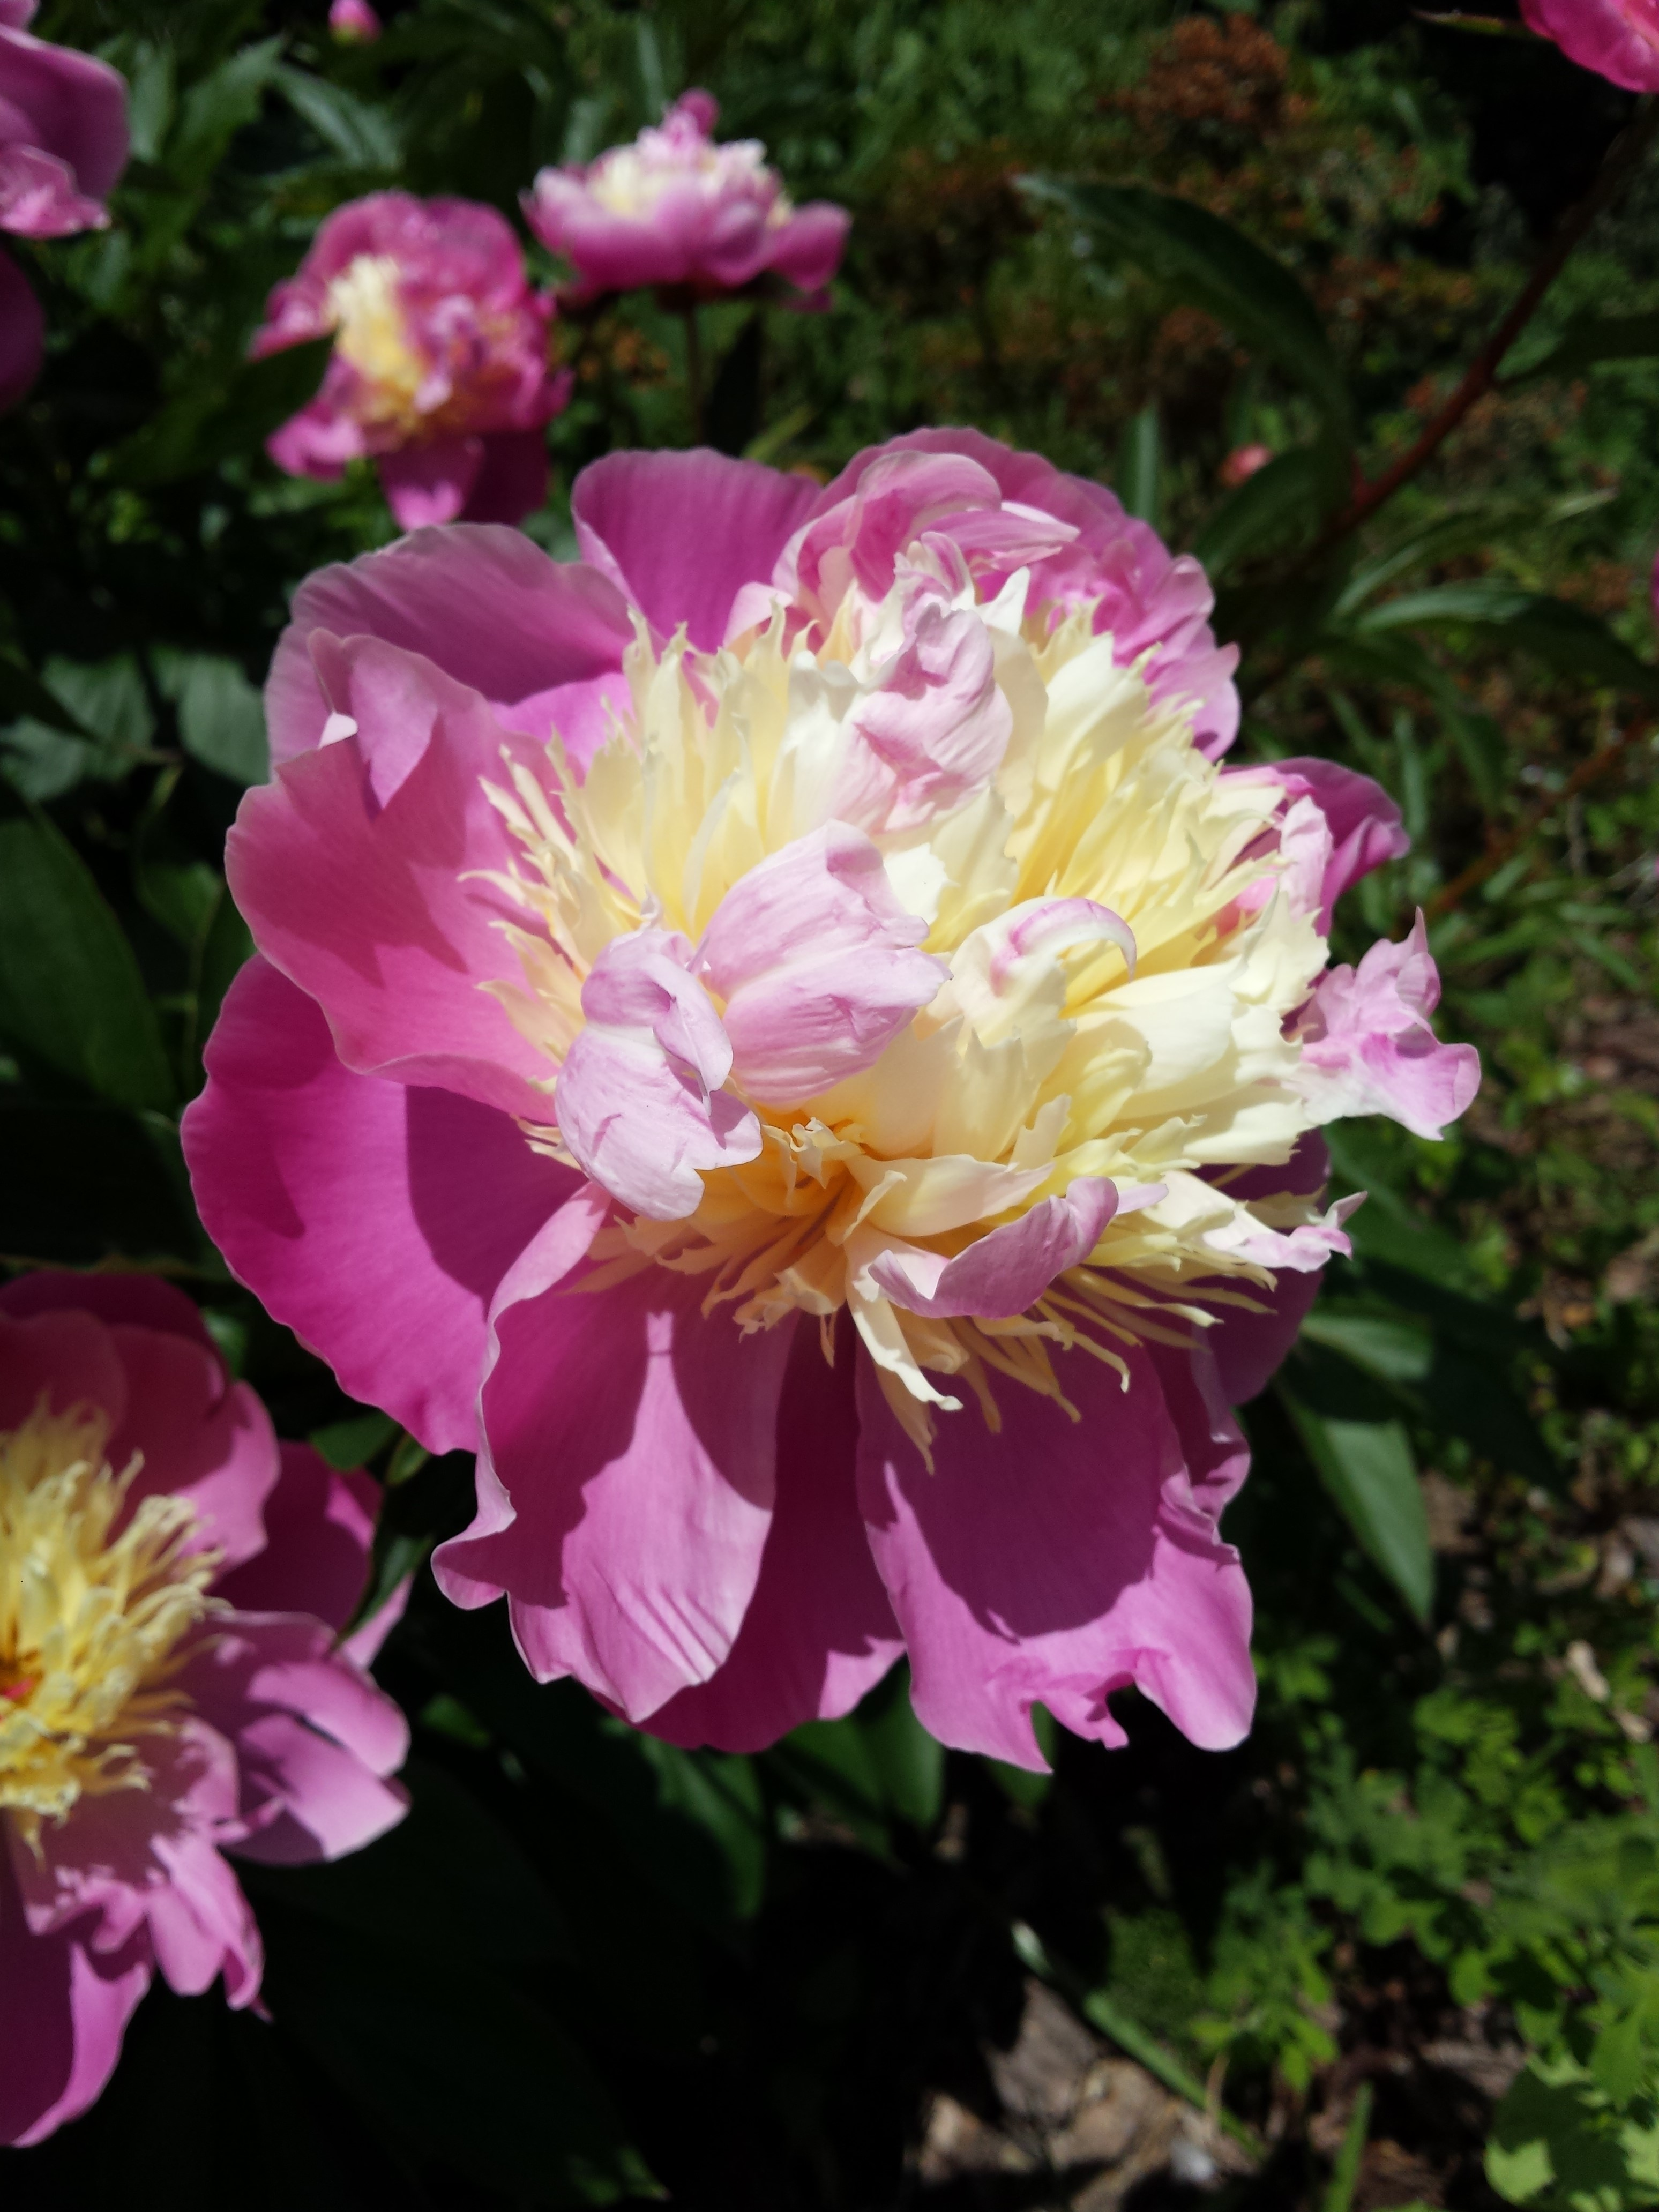 Paeonia lactiflora 'Bowl of Beauty' on Stocker Road, June '15